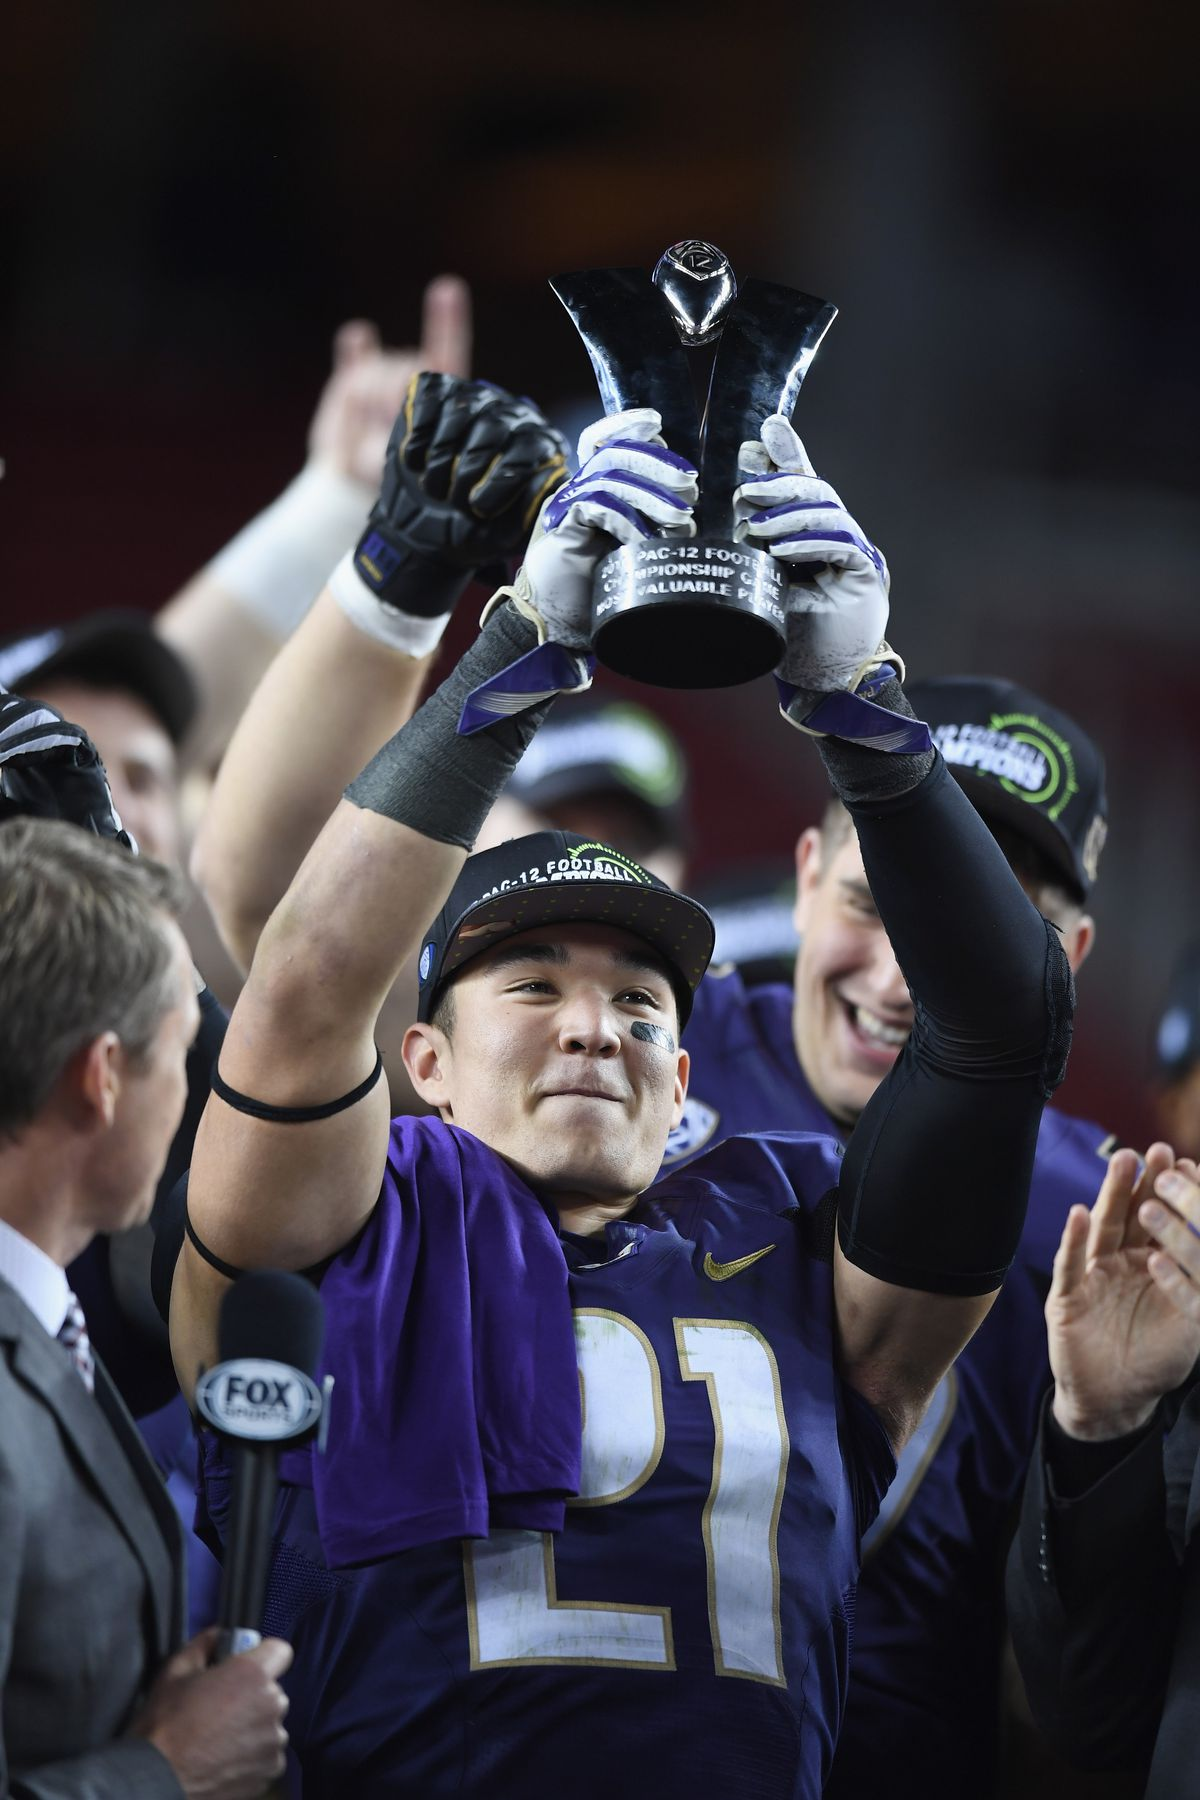 Washington Huskies S Taylor Rapp celebrates after beating the Colorado Buffaloes in the Pac-12 Championship, Dec. 2, 2016.